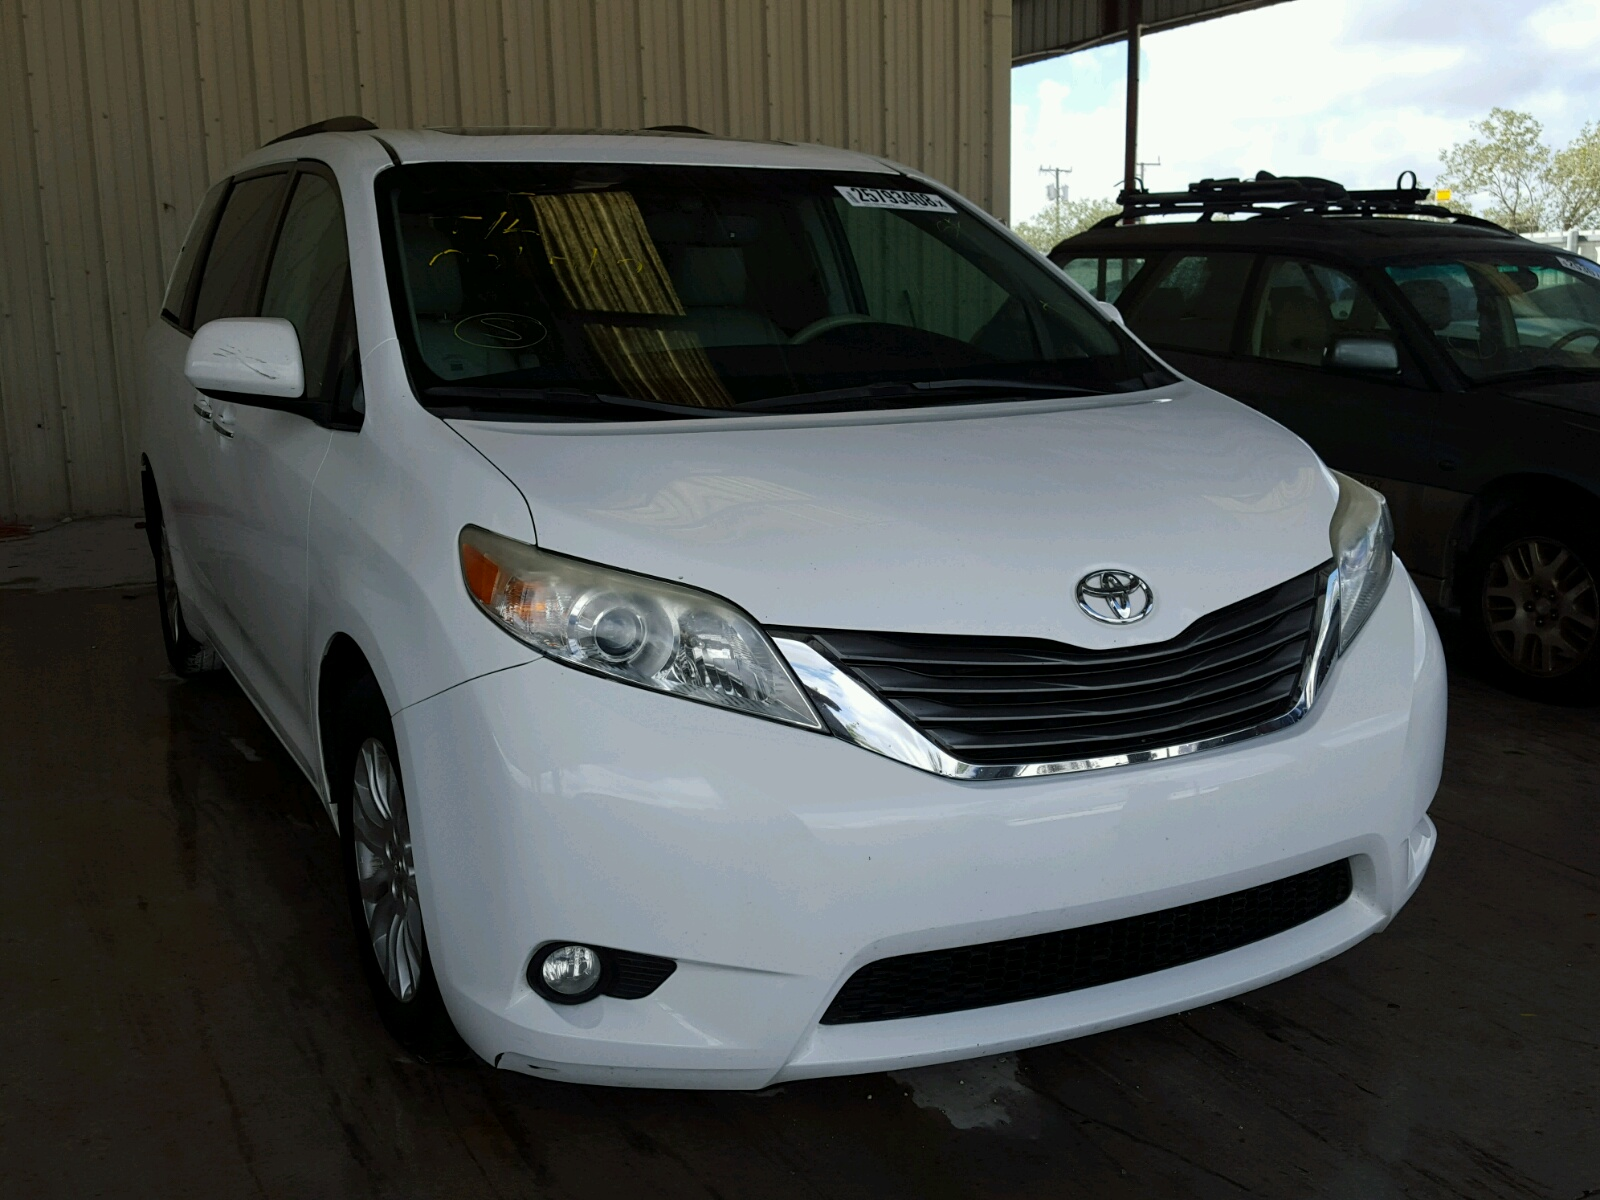 article entertainment reviews xle notes sienna rear toyota and review car interior comfortable